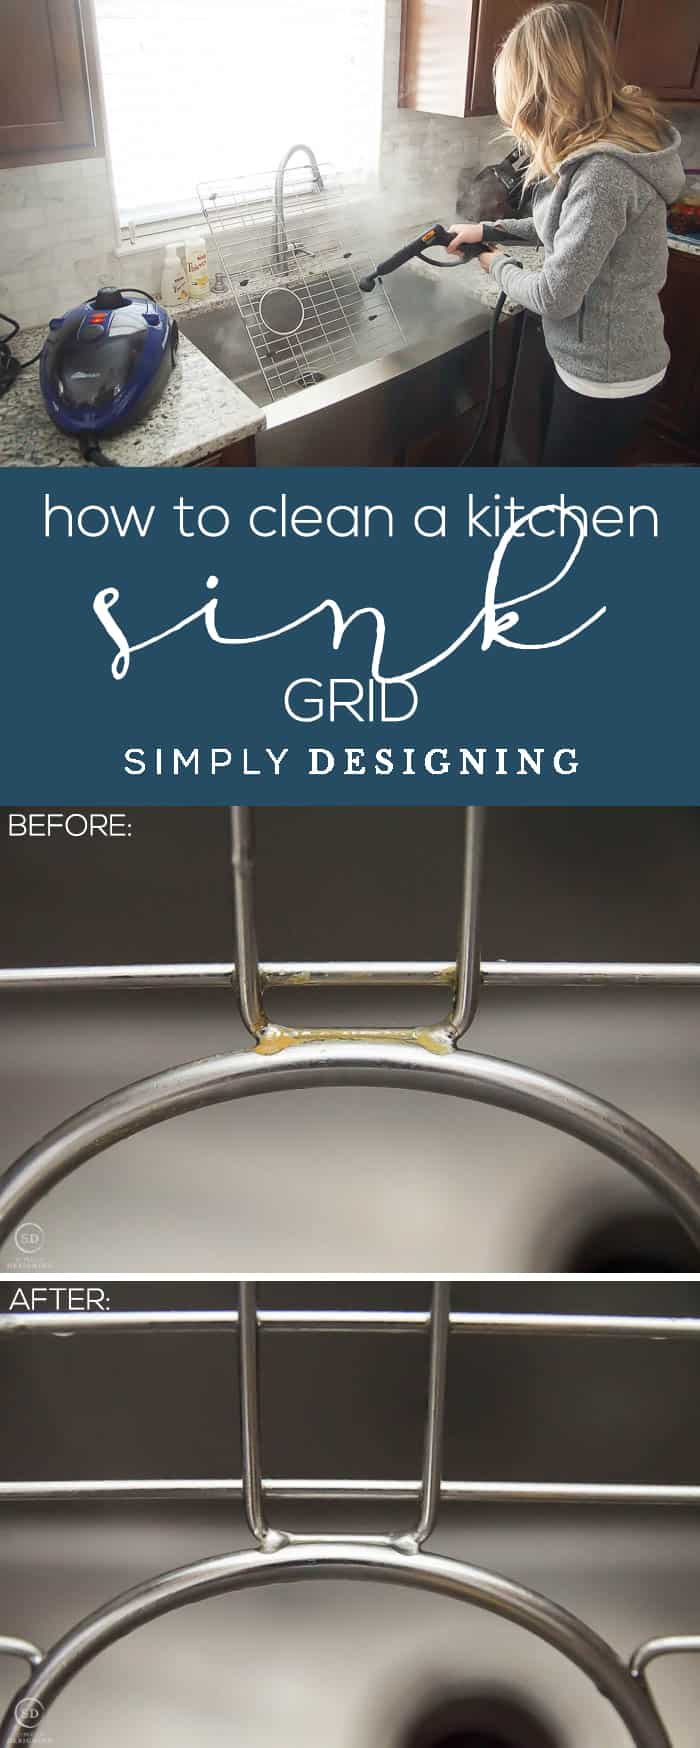 How to Clean a Kitchen Sink Grid - the easiest most effective way to clean and sanitize a kitchen sink grid